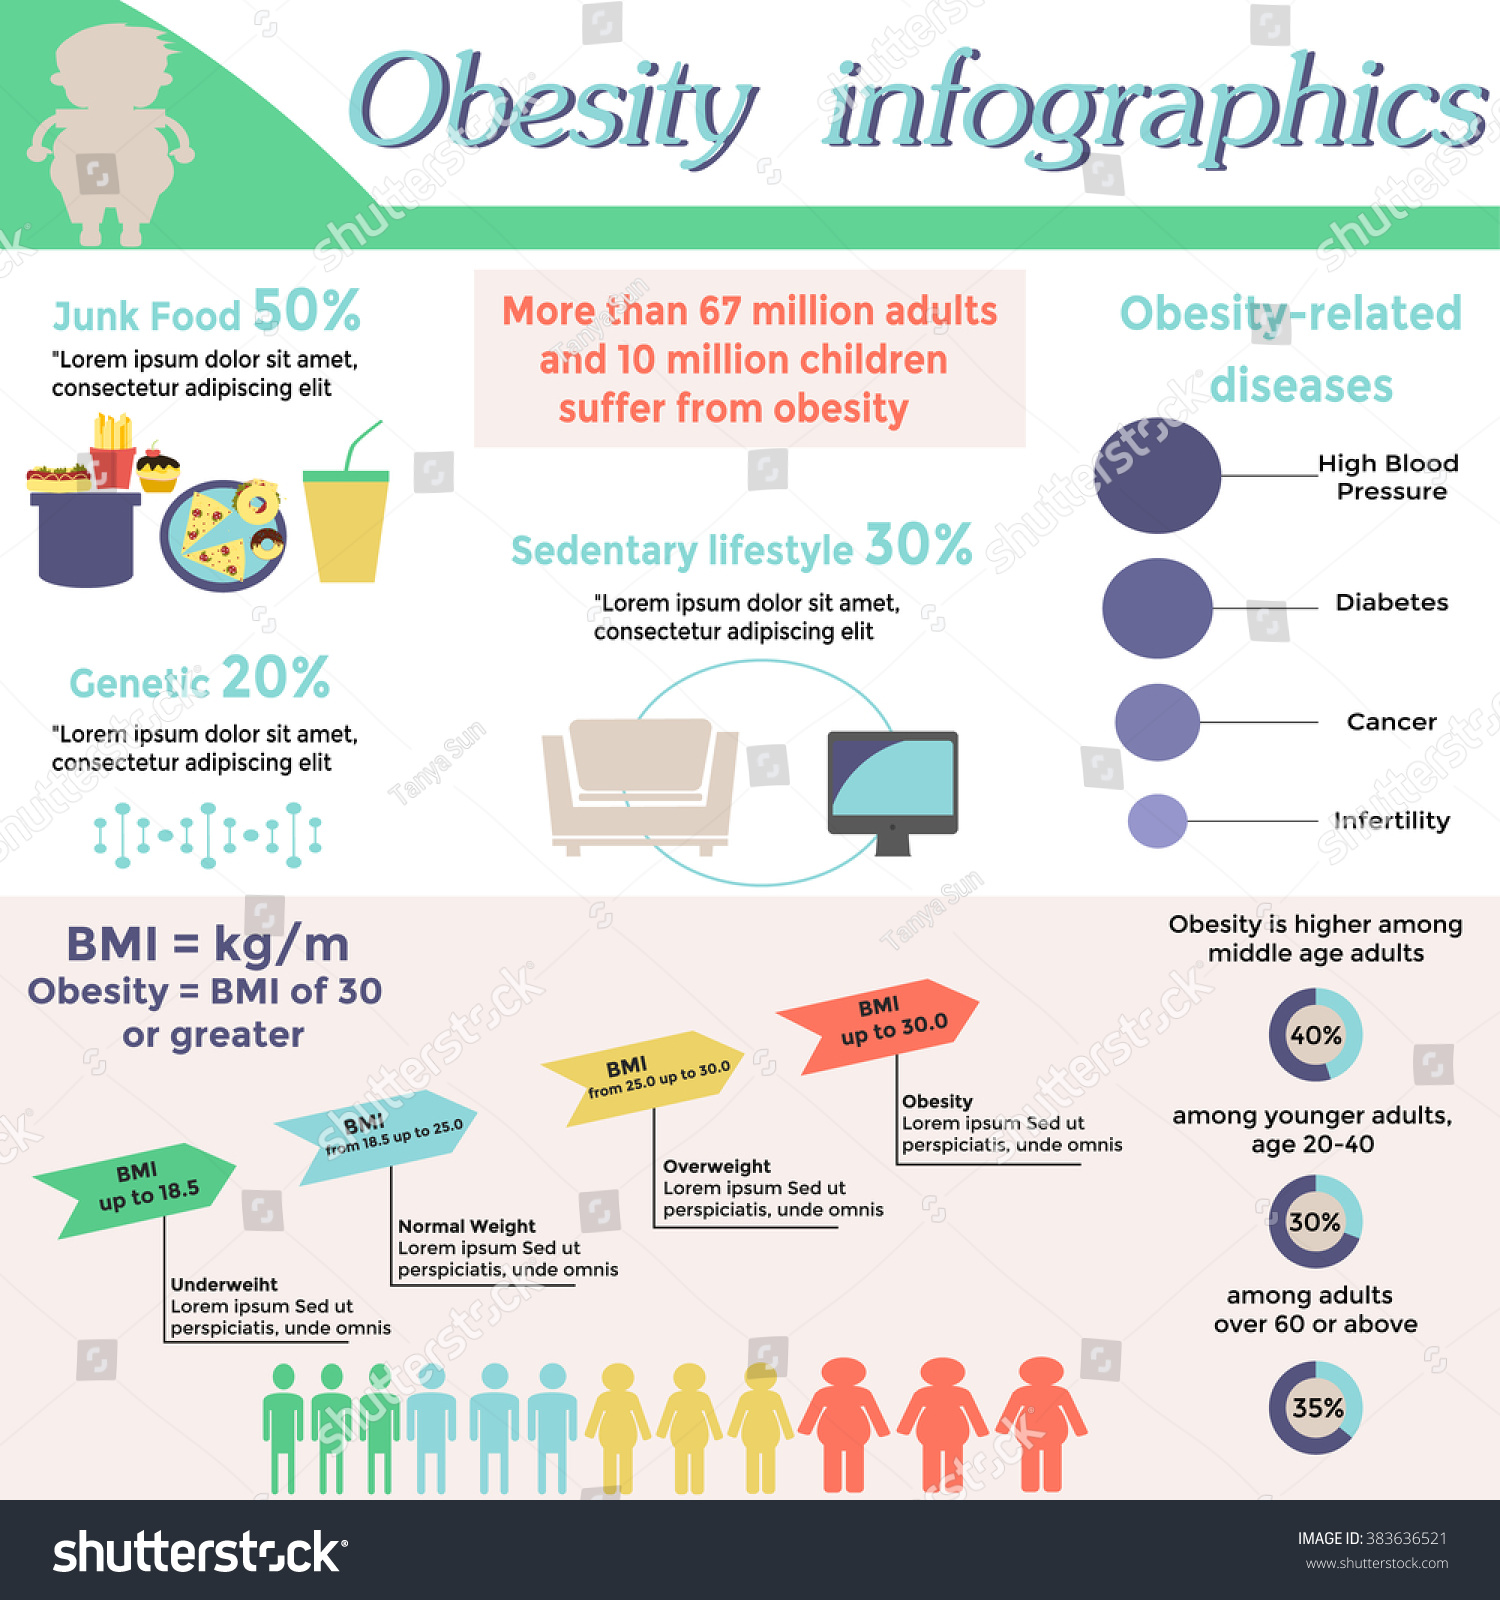 Obesity Infographic Template  Fast Food, Genetics